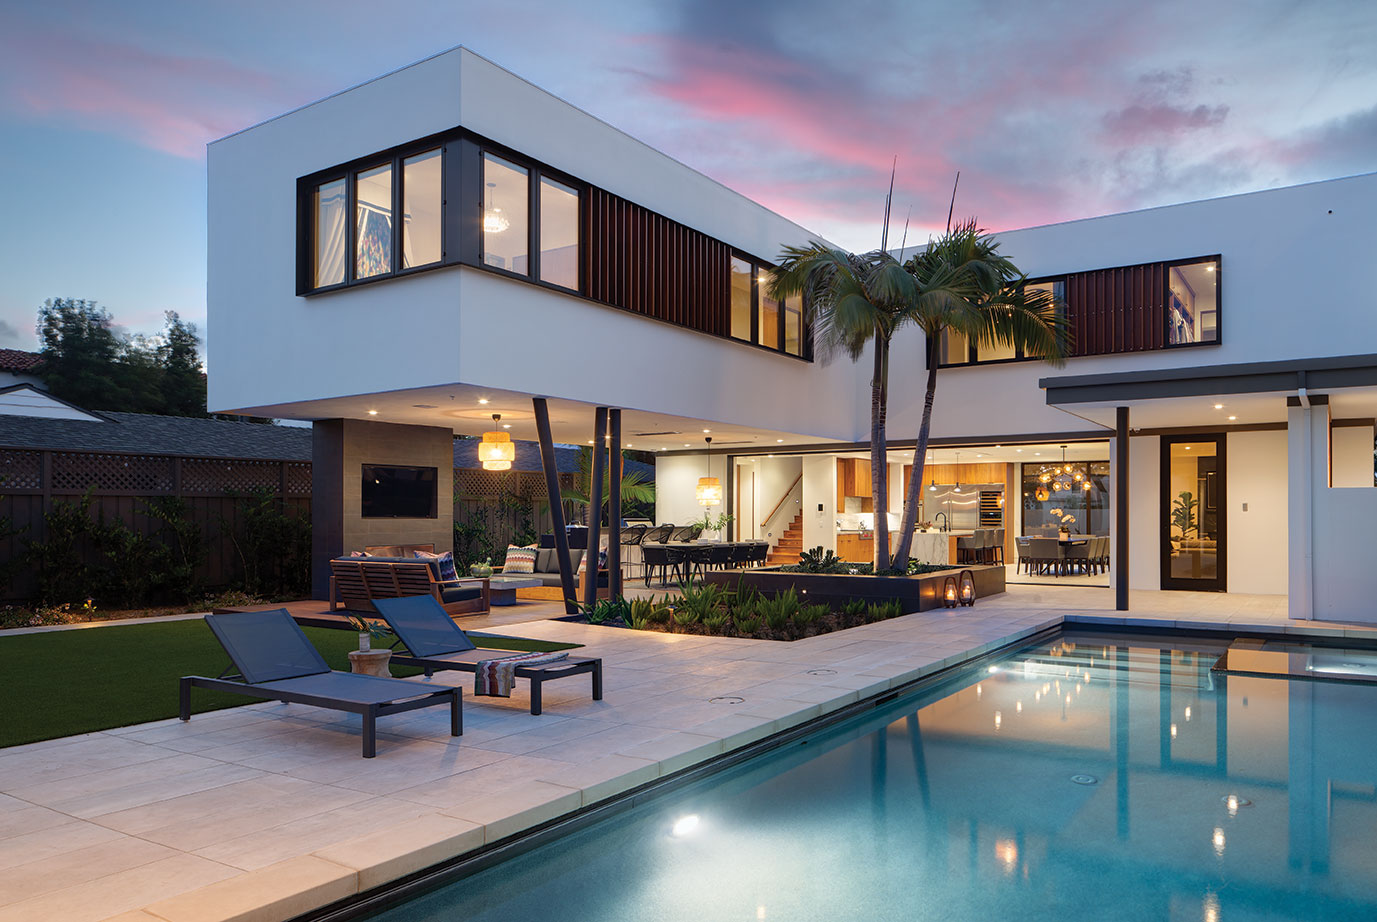 cantilevered architecture modern family home pool at sunset